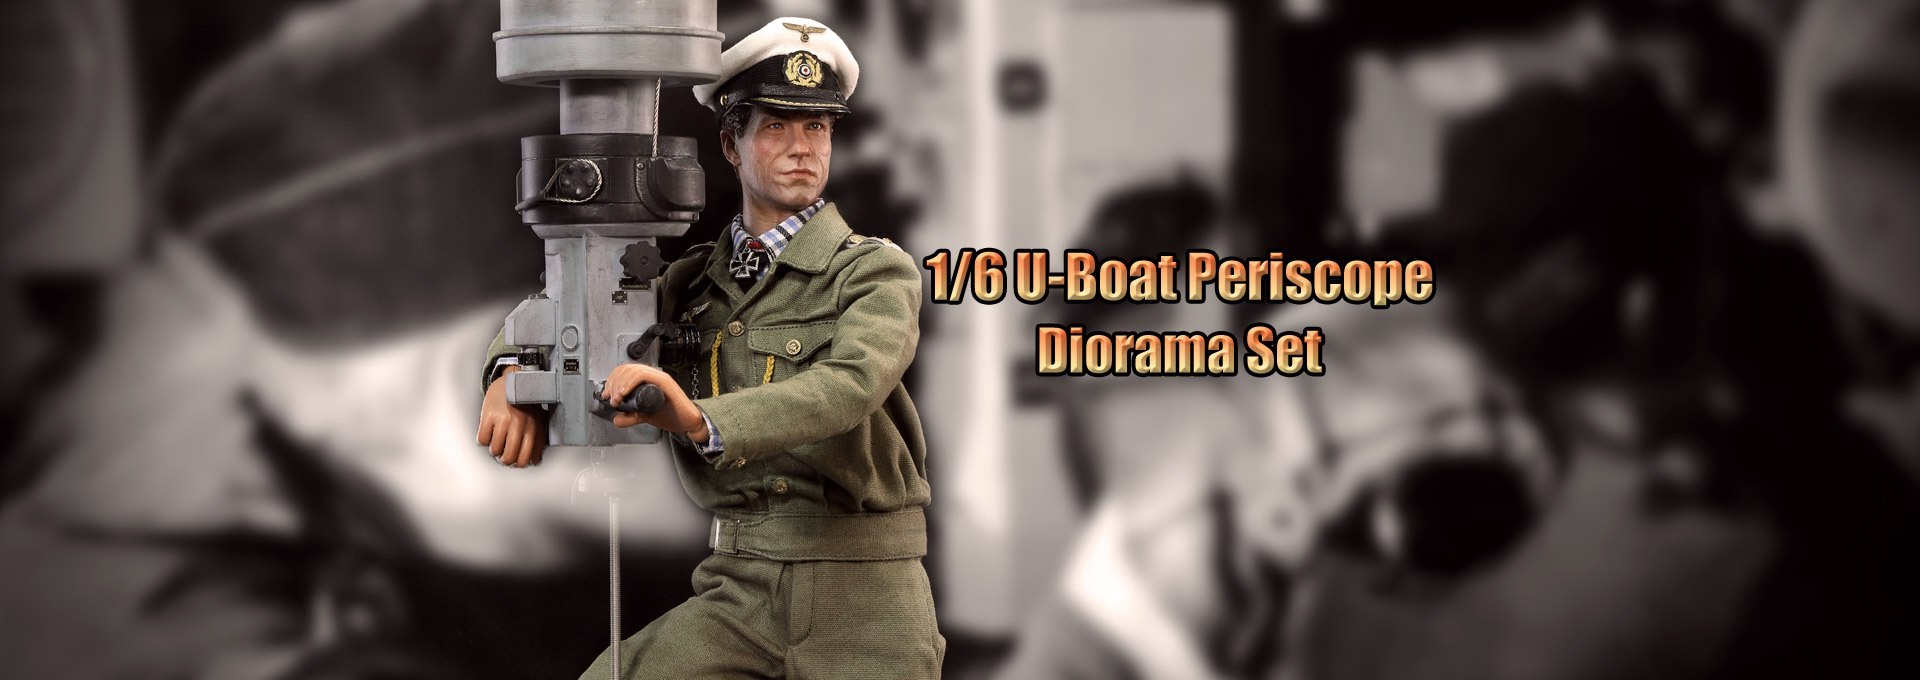 DID German U-Boat periscope diorama banner.jpg